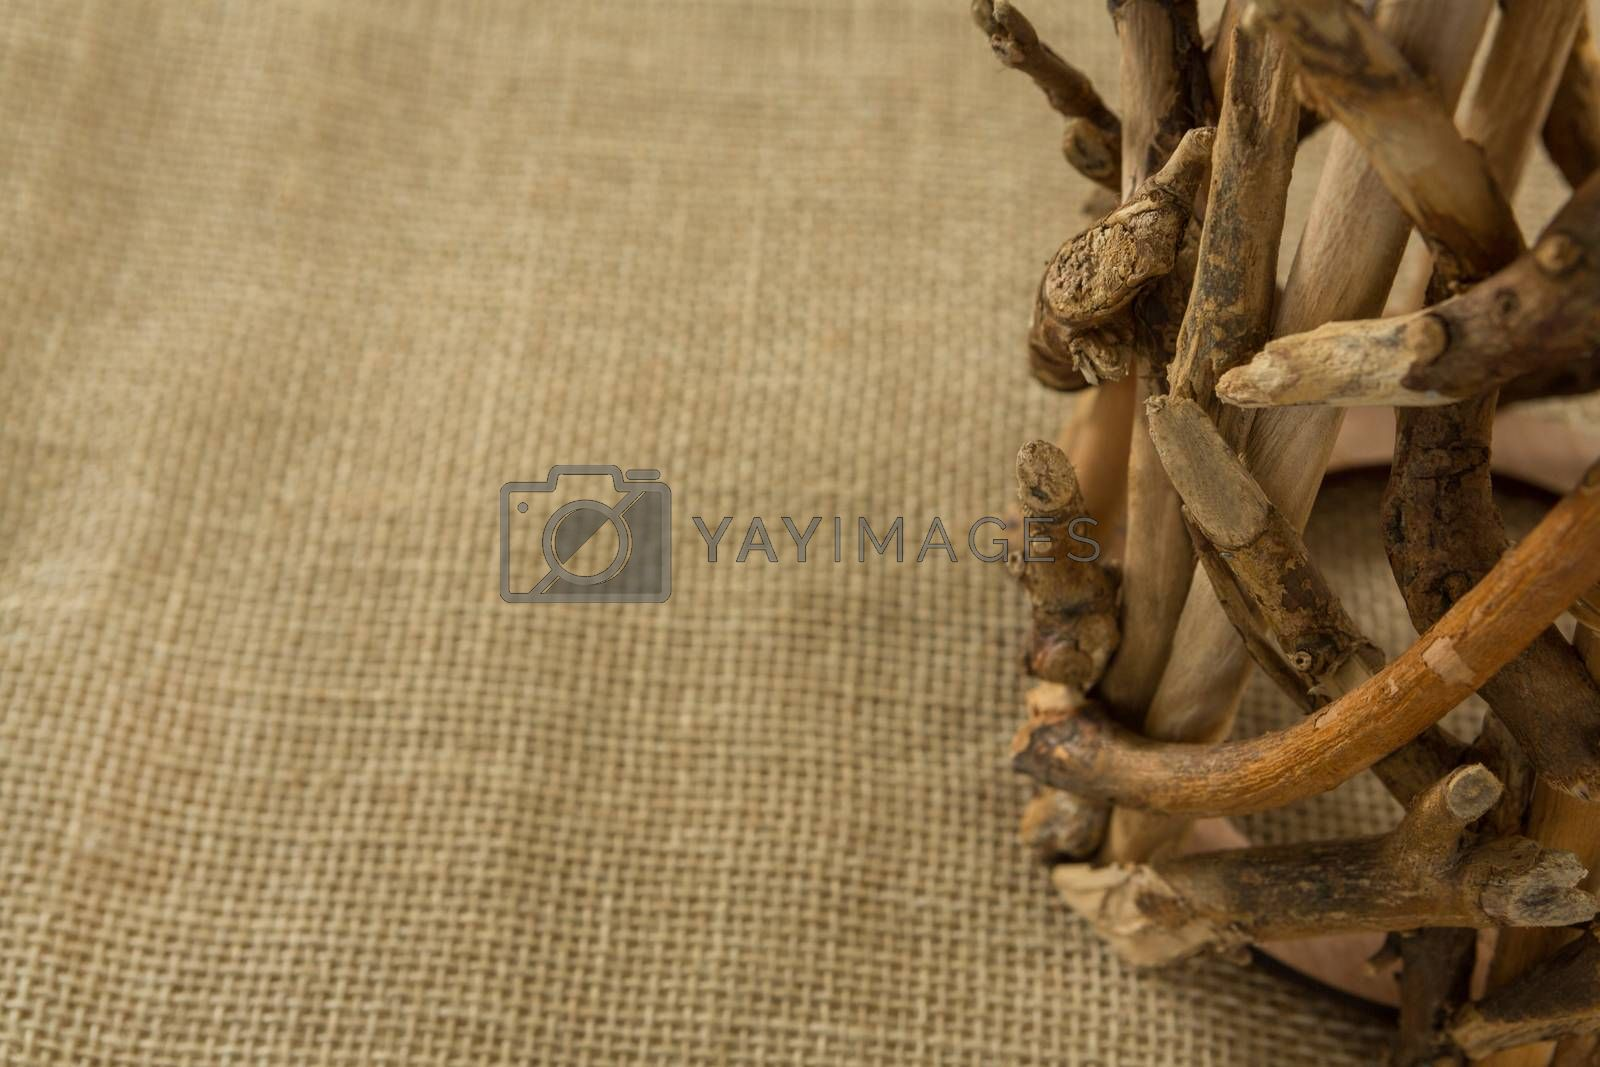 Cropped image of wooden decoration by Wavebreakmedia